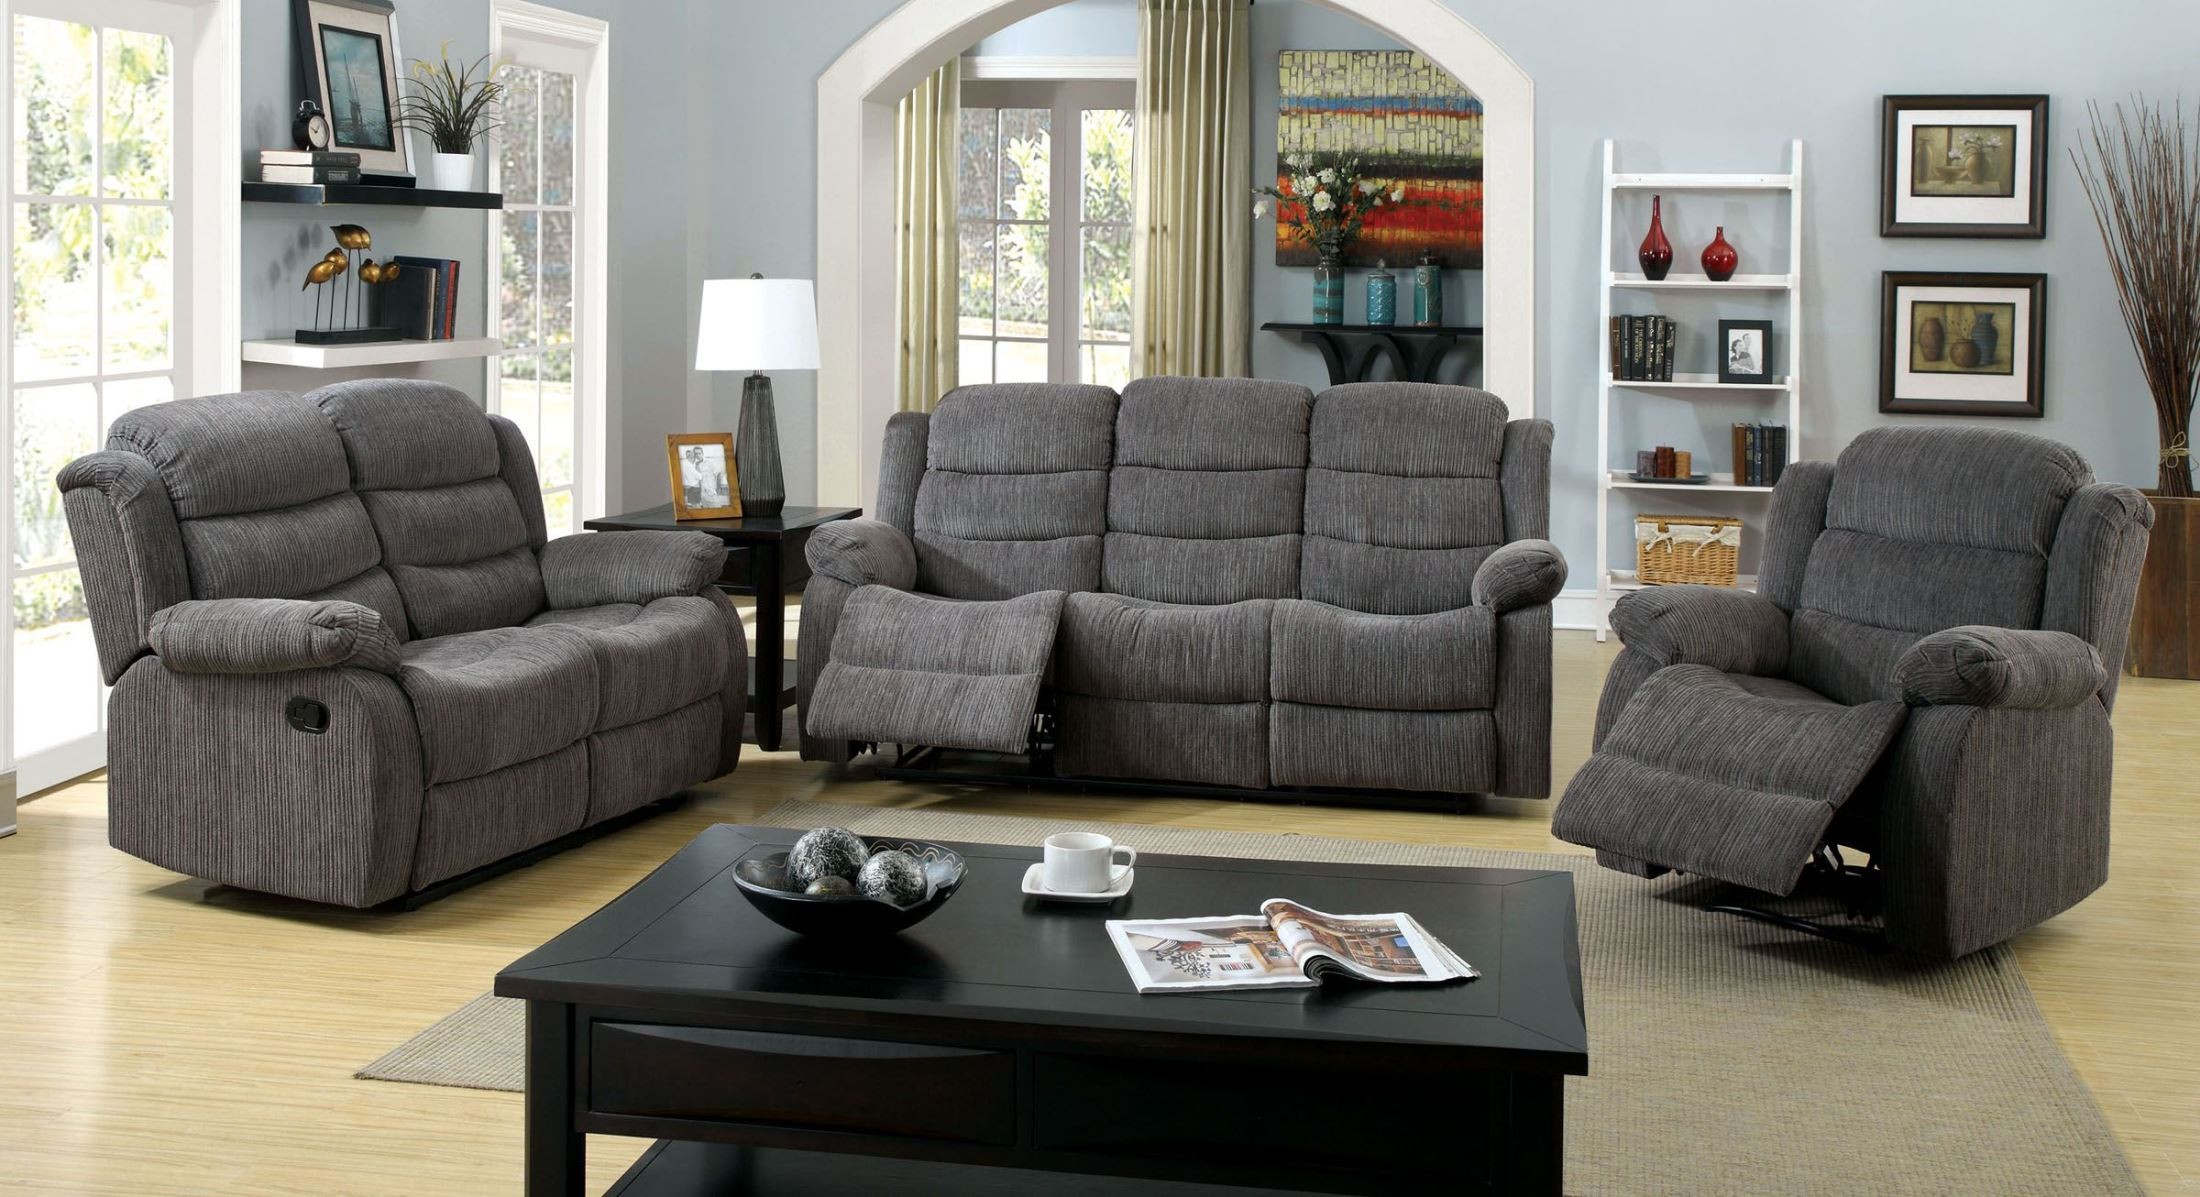 millville gray chenille reclining living room set from furniture of